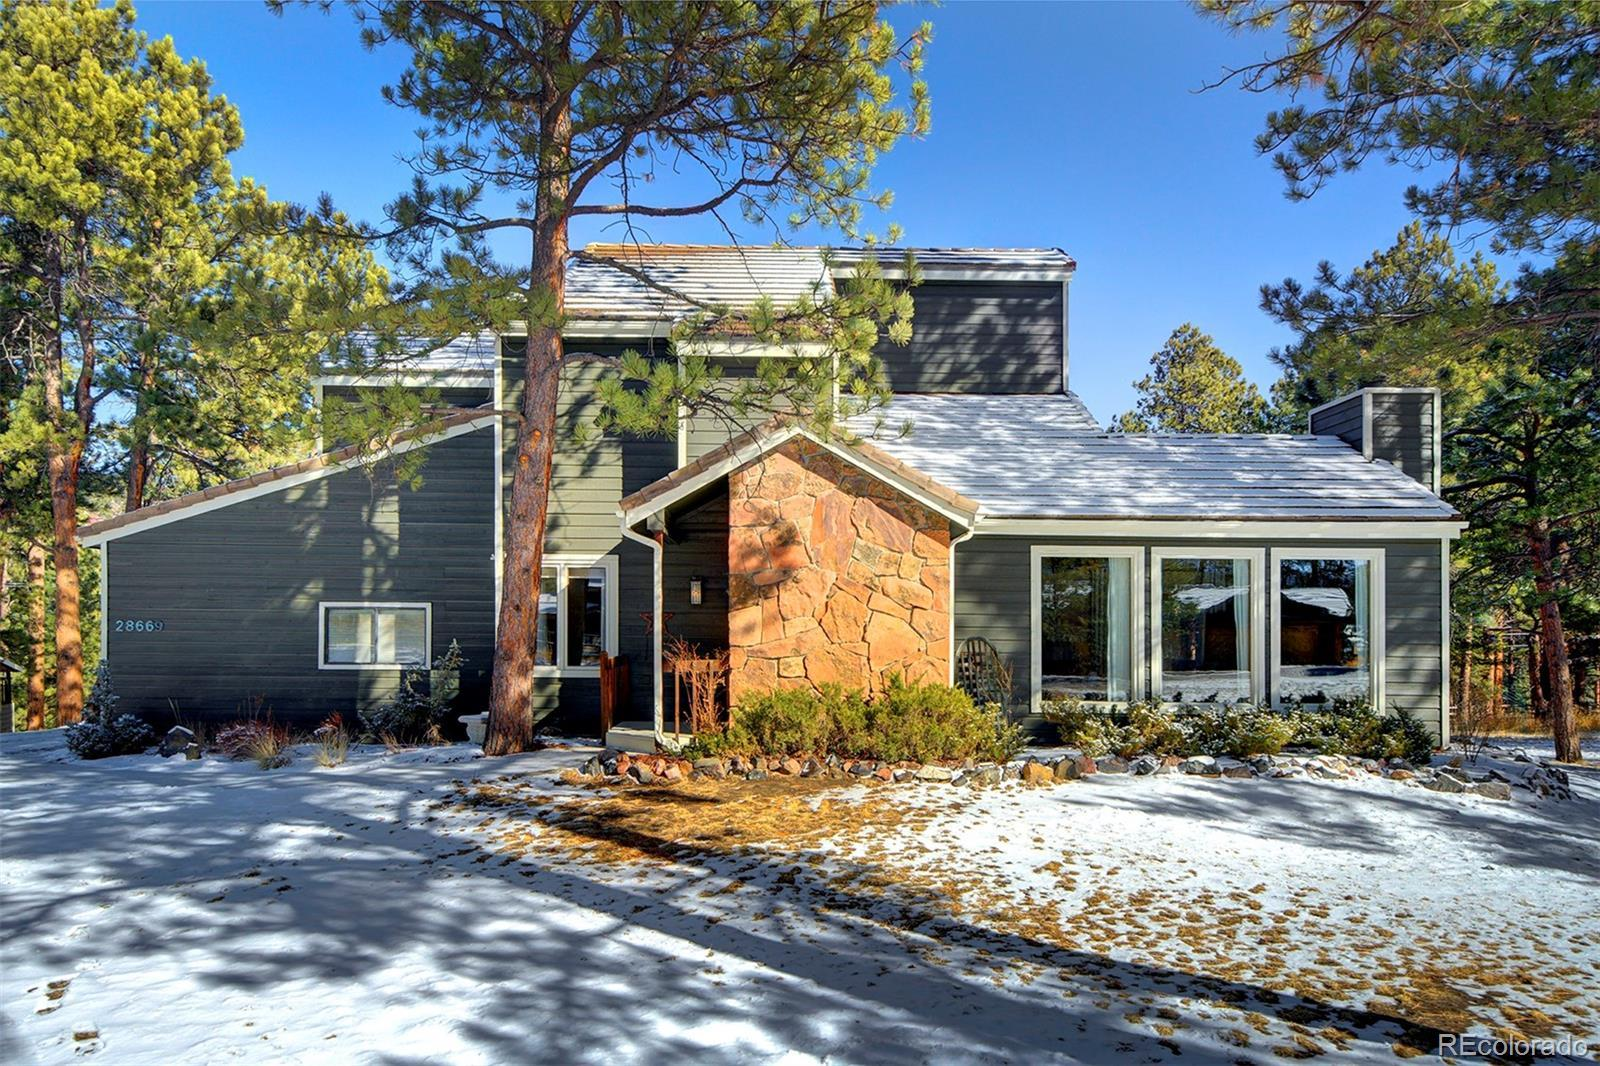 28669 Douglas Park Road, Evergreen, CO 80439 - #: 4424427